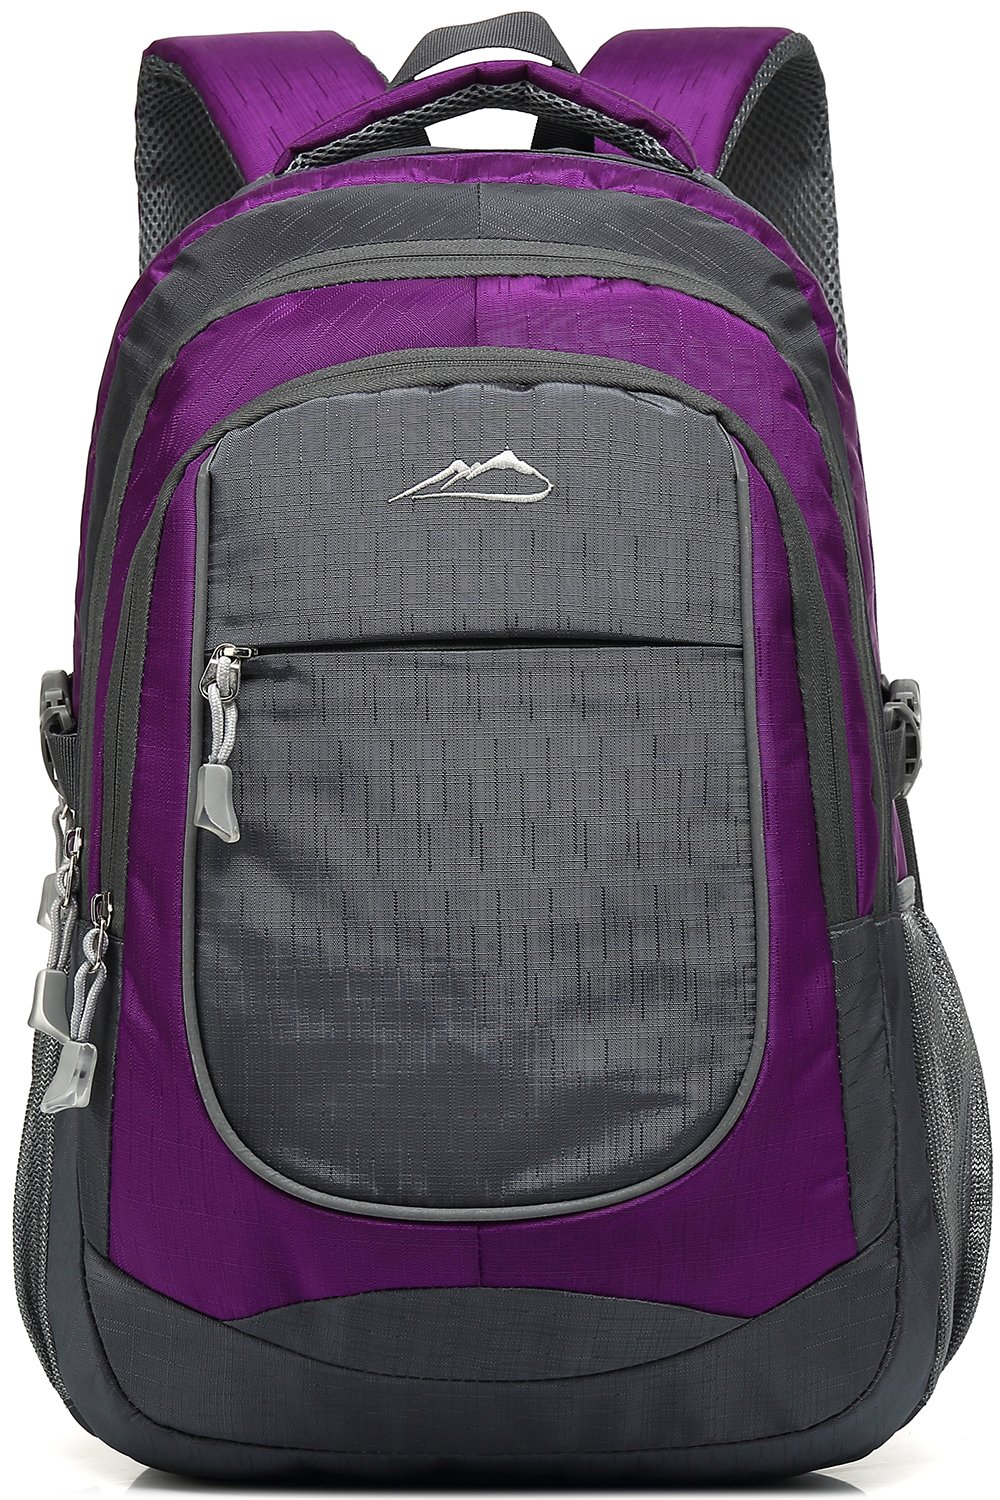 Backpack Bookbag For School College Student Travel Business Hiking Fit Laptop Up to 15.6 Inch (Purple)